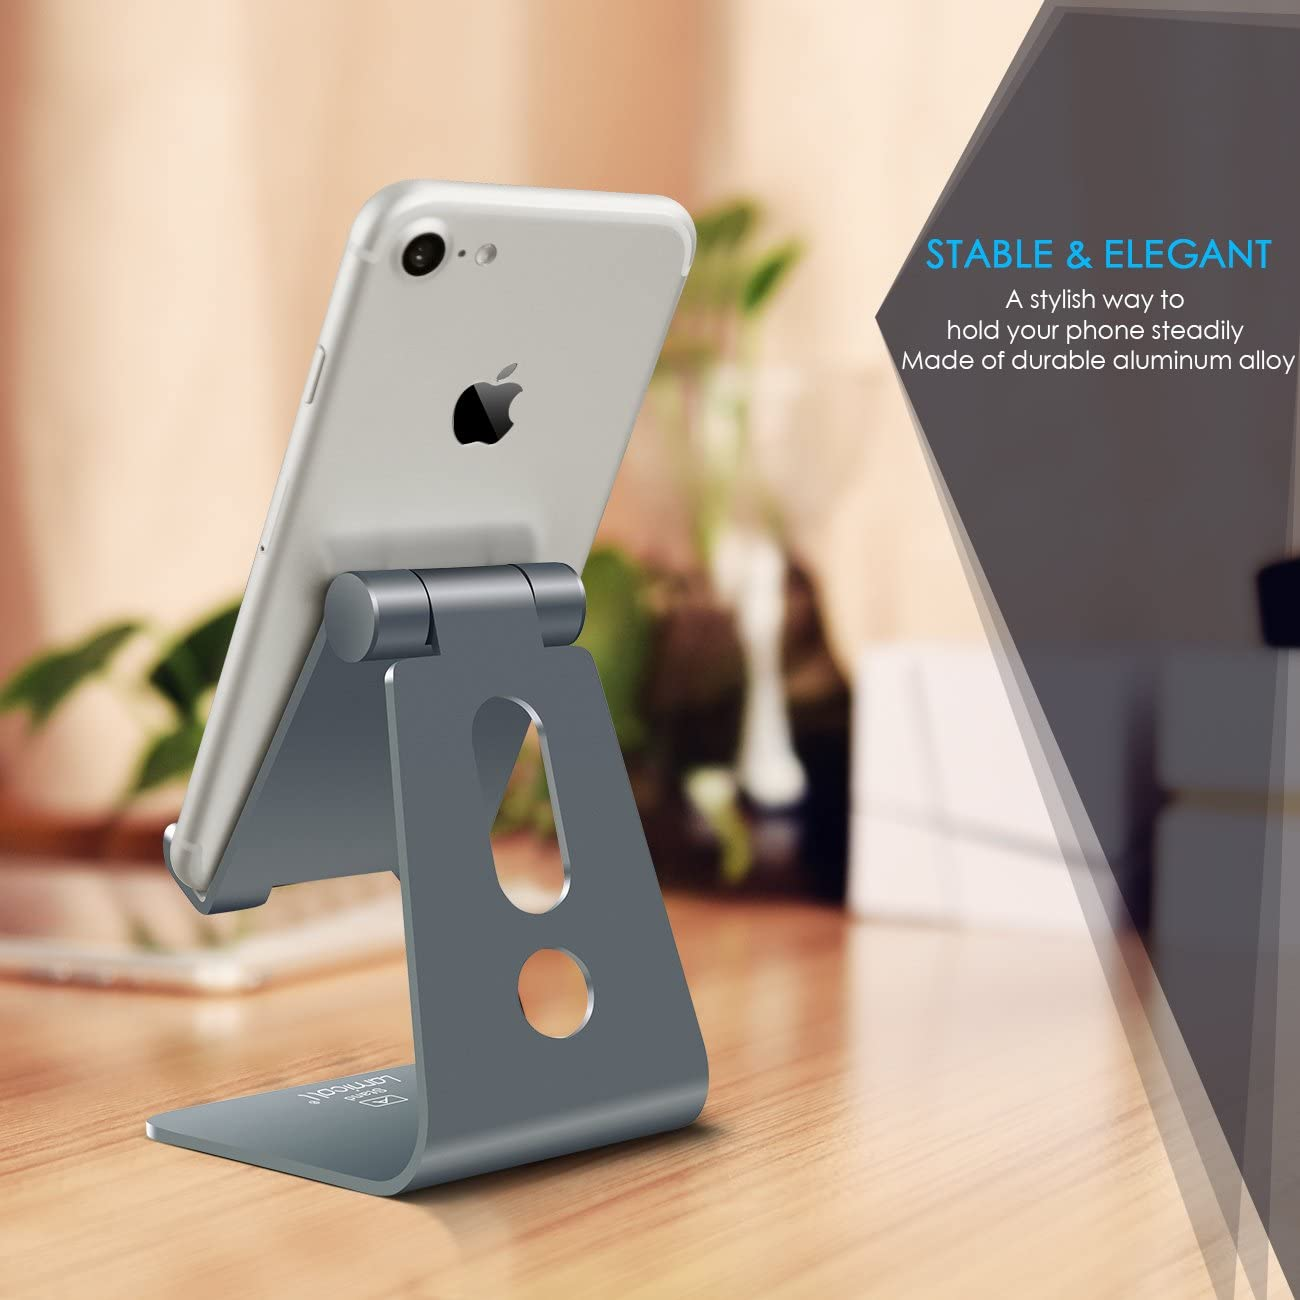 Android Smartphone Desk Accessories Rose Gold Lamicall Phone Stand Cradle Dock Holder Adjustable Cell Phone Stand Compatible with iPhone Xs XR 8 X 7 6 6S Plus SE 5 5S 5C Charging